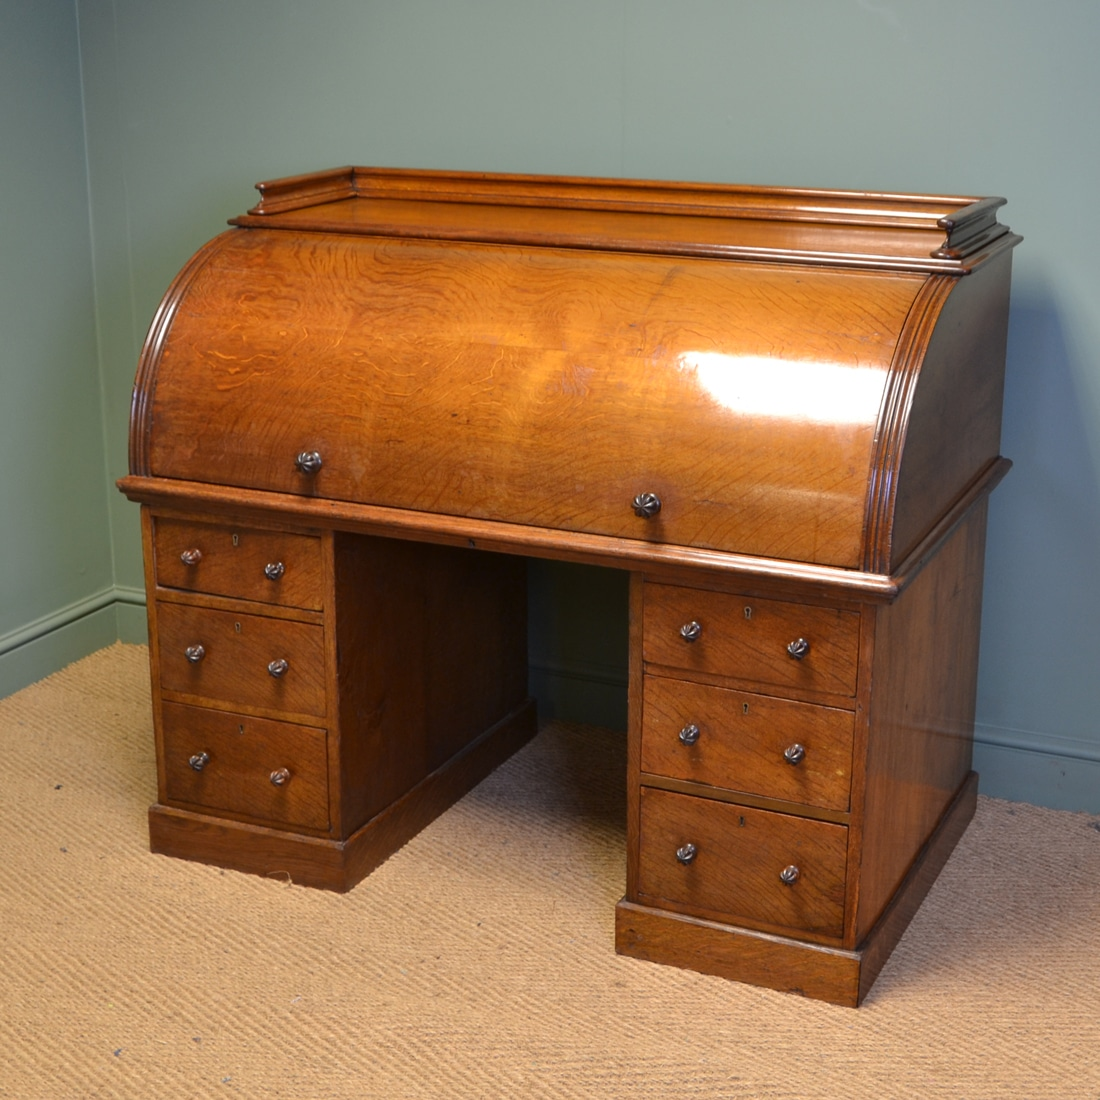 Large Country House Oak Cylindrical Antique Roll Top Desk